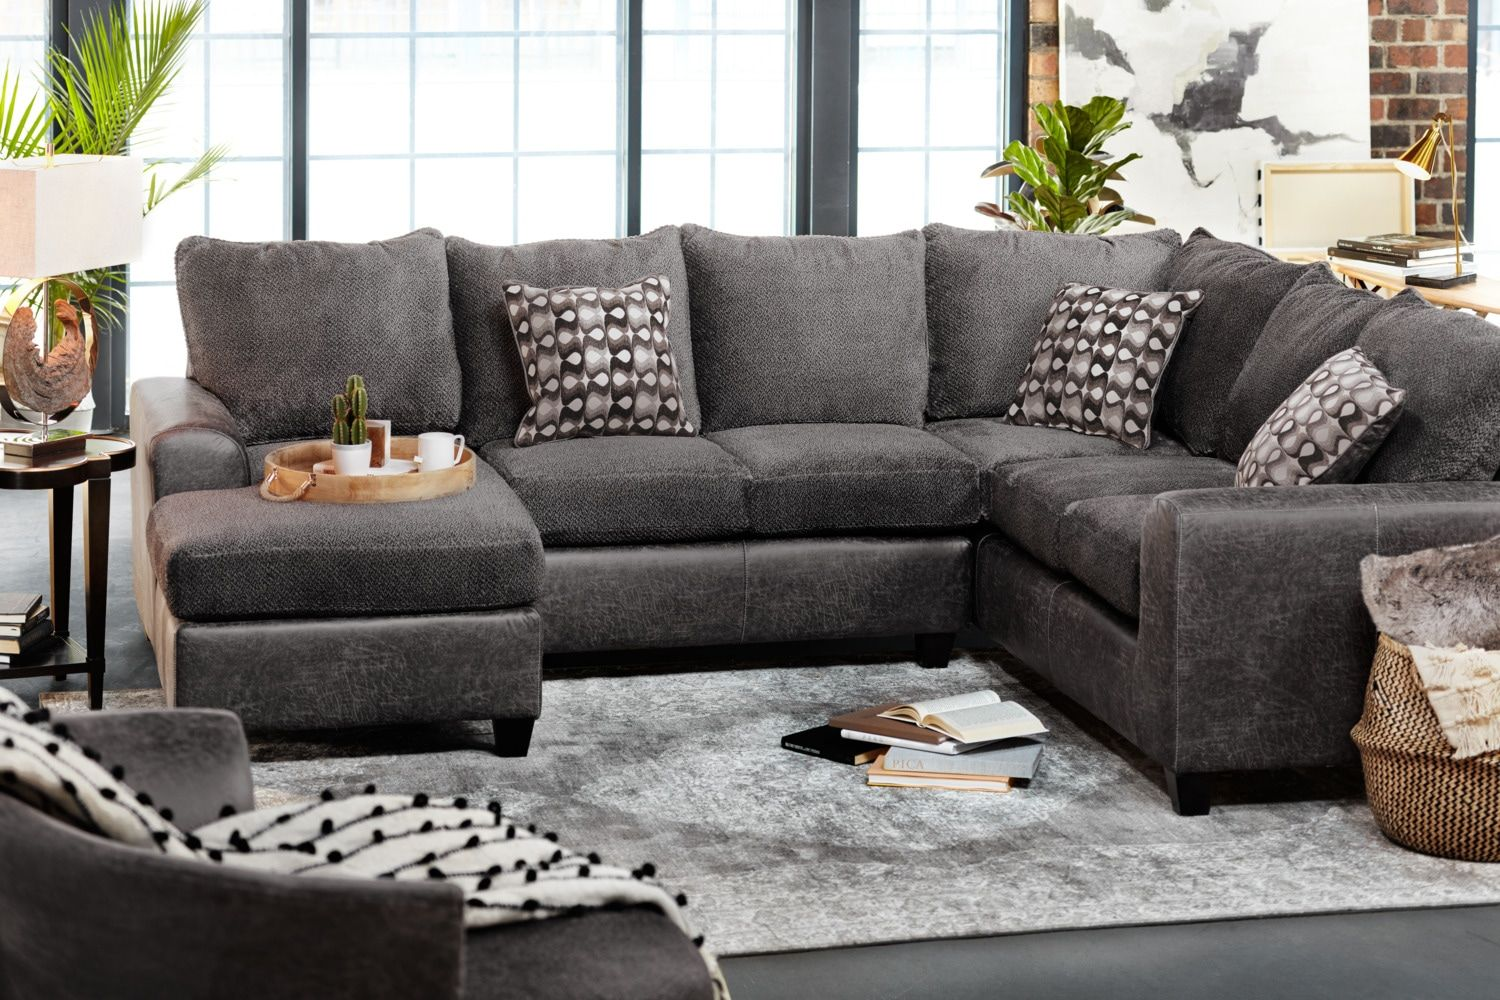 Brando 3 Piece Sectional With Modular Chaise In 2020 3 Piece